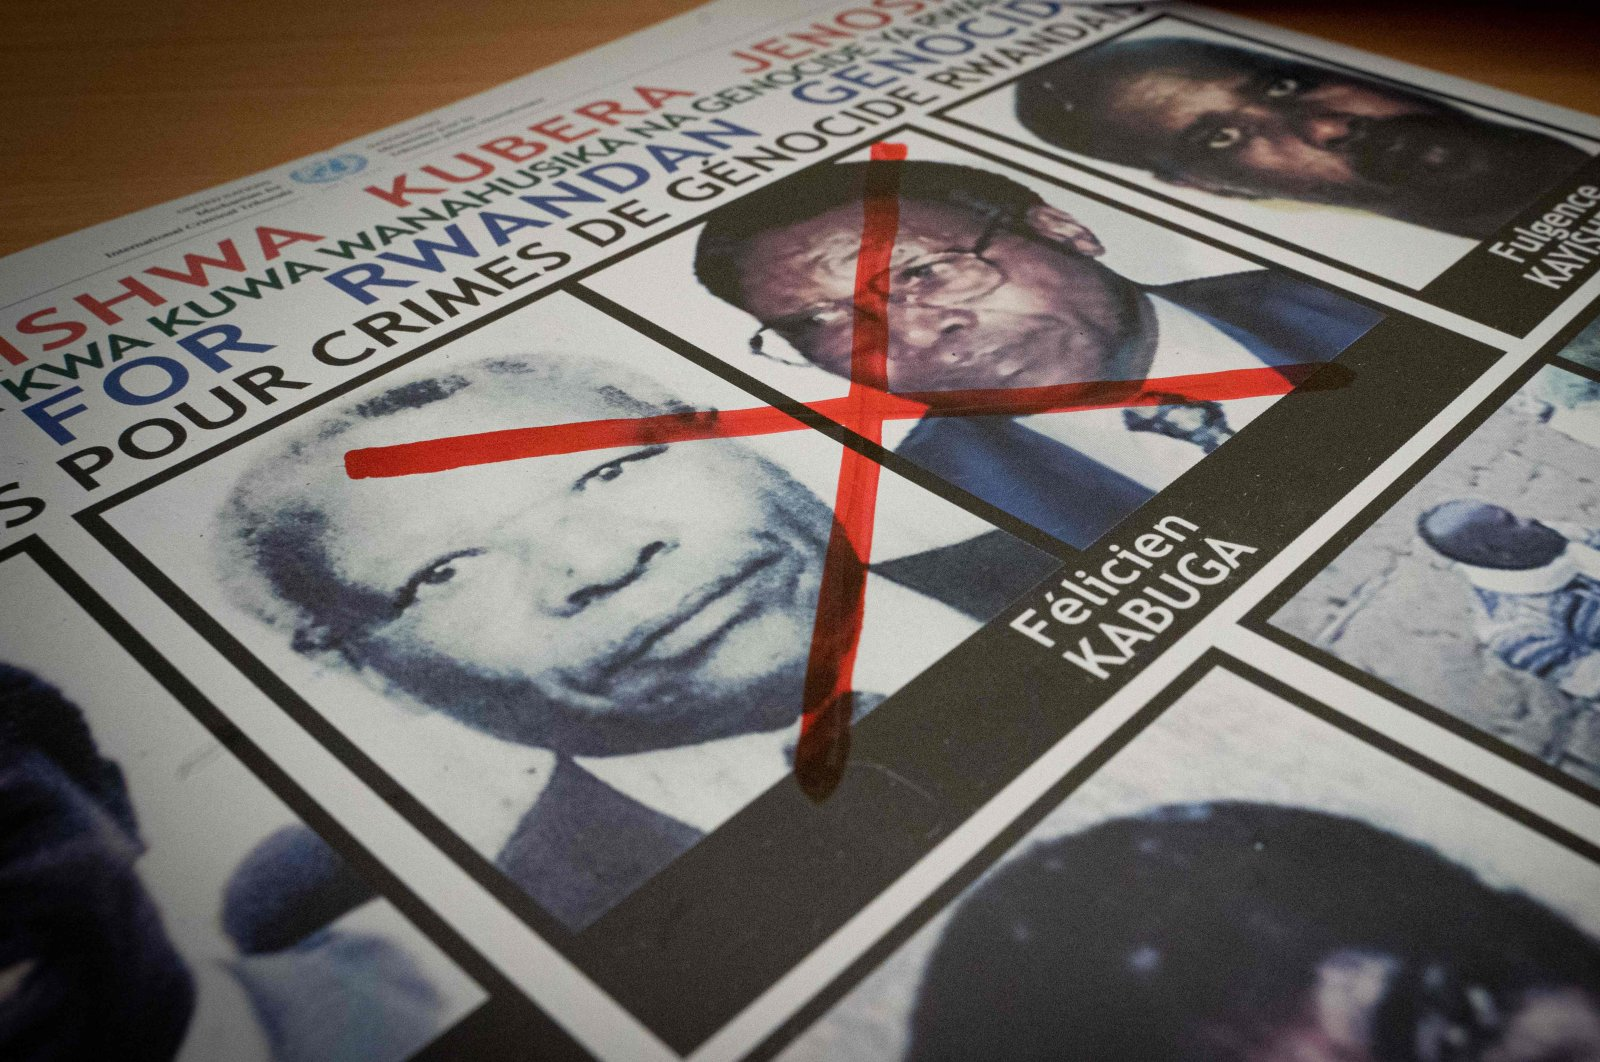 A photo shows a red cross drawn on the face of Felicien Kabuga, one of the last key suspects in the 1994 Rwandan genocide, on a wanted poster at the Genocide Fugitive Tracking Unit office in Kigali, Rwanda, May 19, 2020. (AFP Photo)